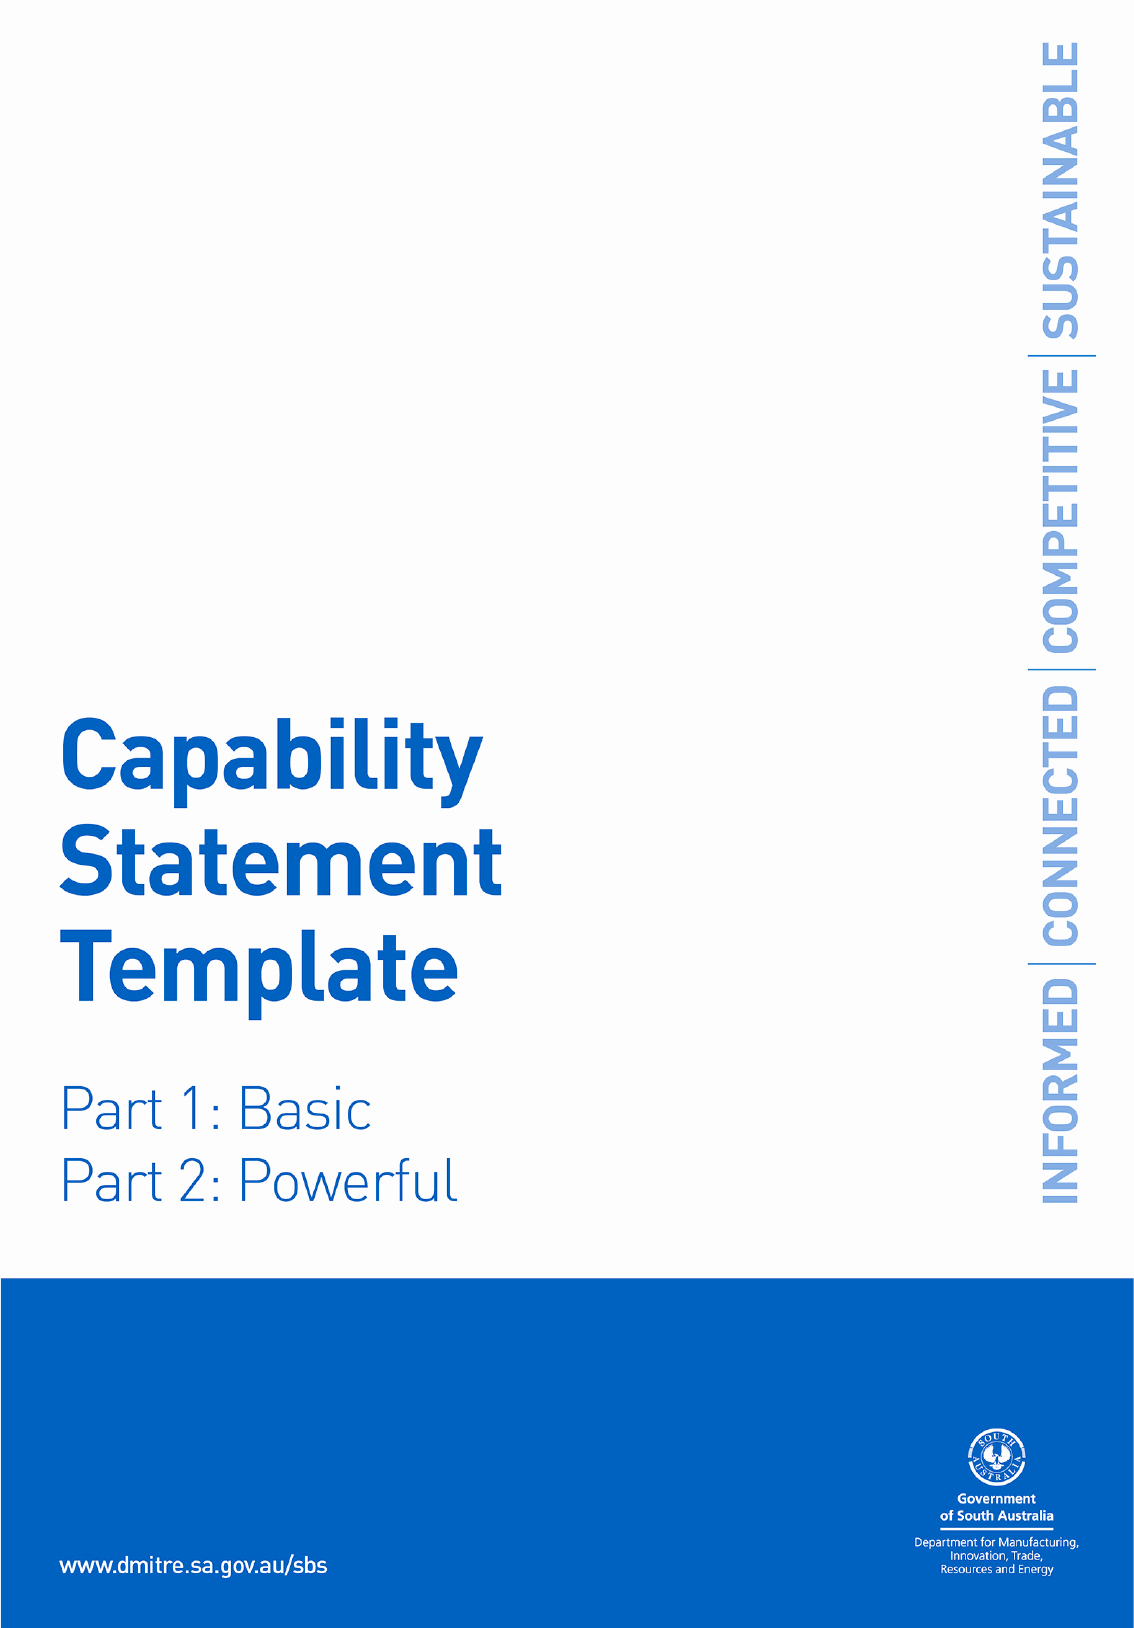 Capability Statement Template Word Fresh Capability Statement Template In Word and Pdf formats